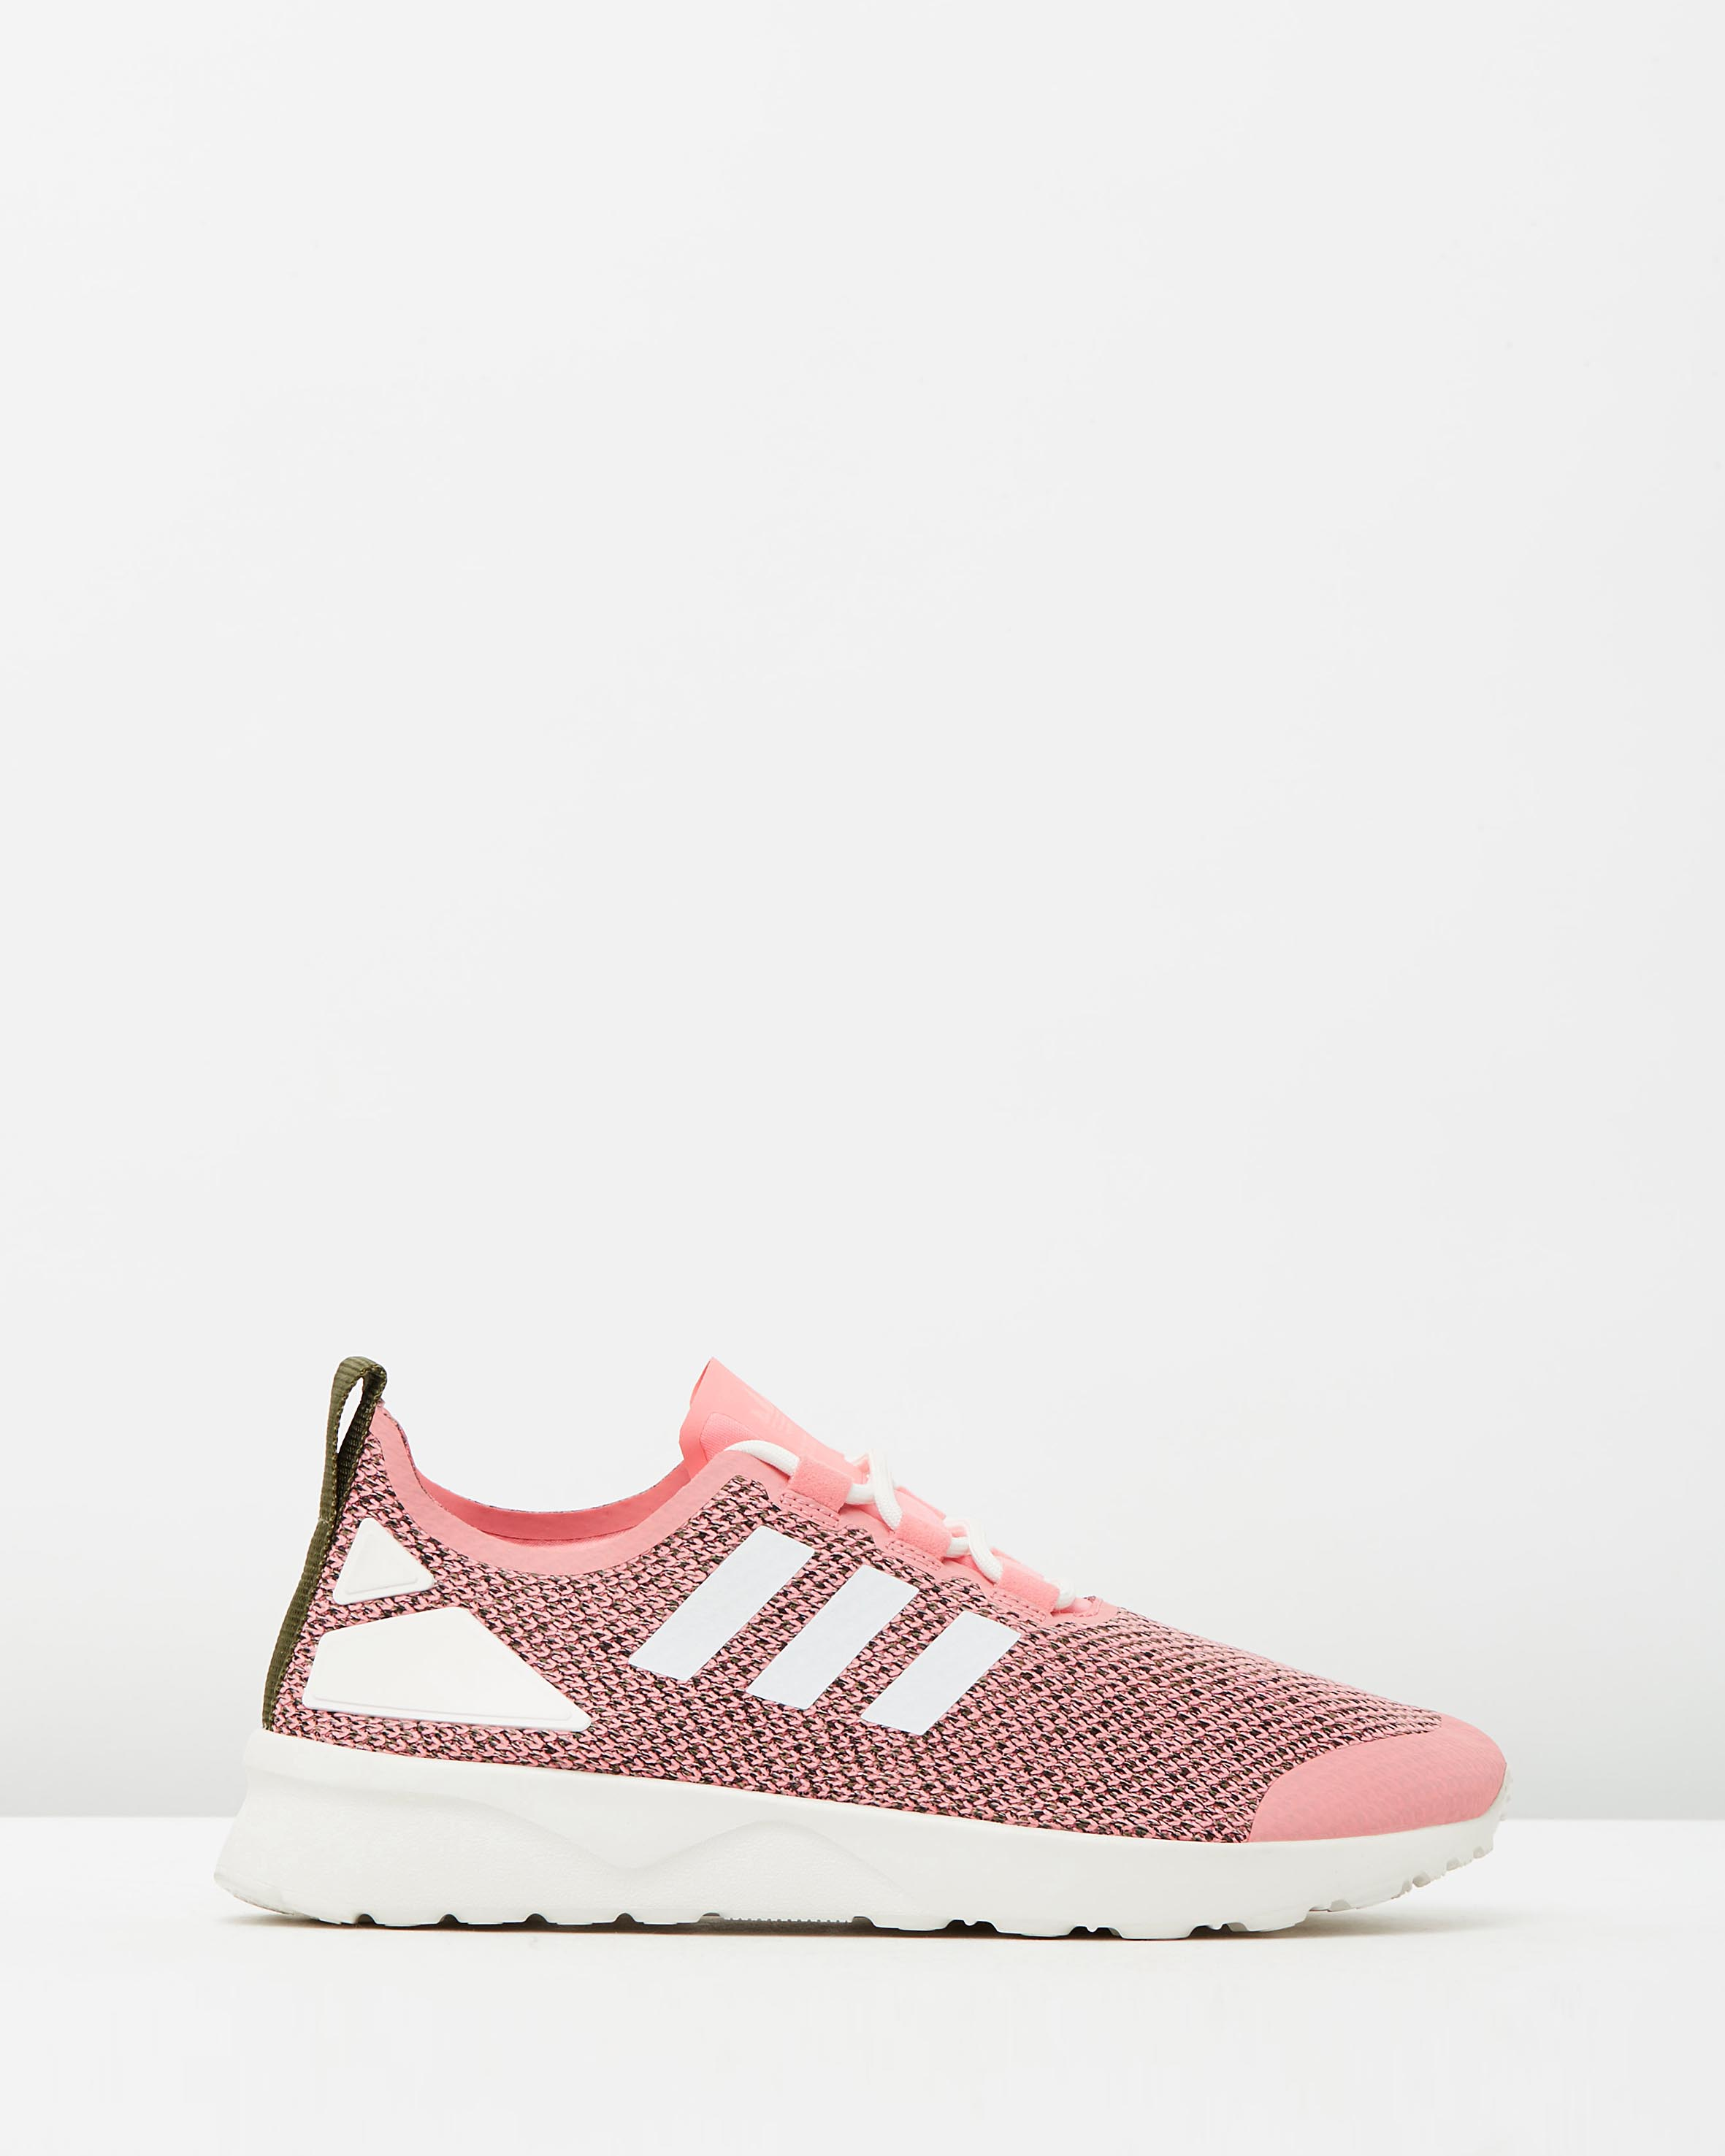 save off b1f2d 2927a Adidas Women's ZX Flux ADV Verve W Pink